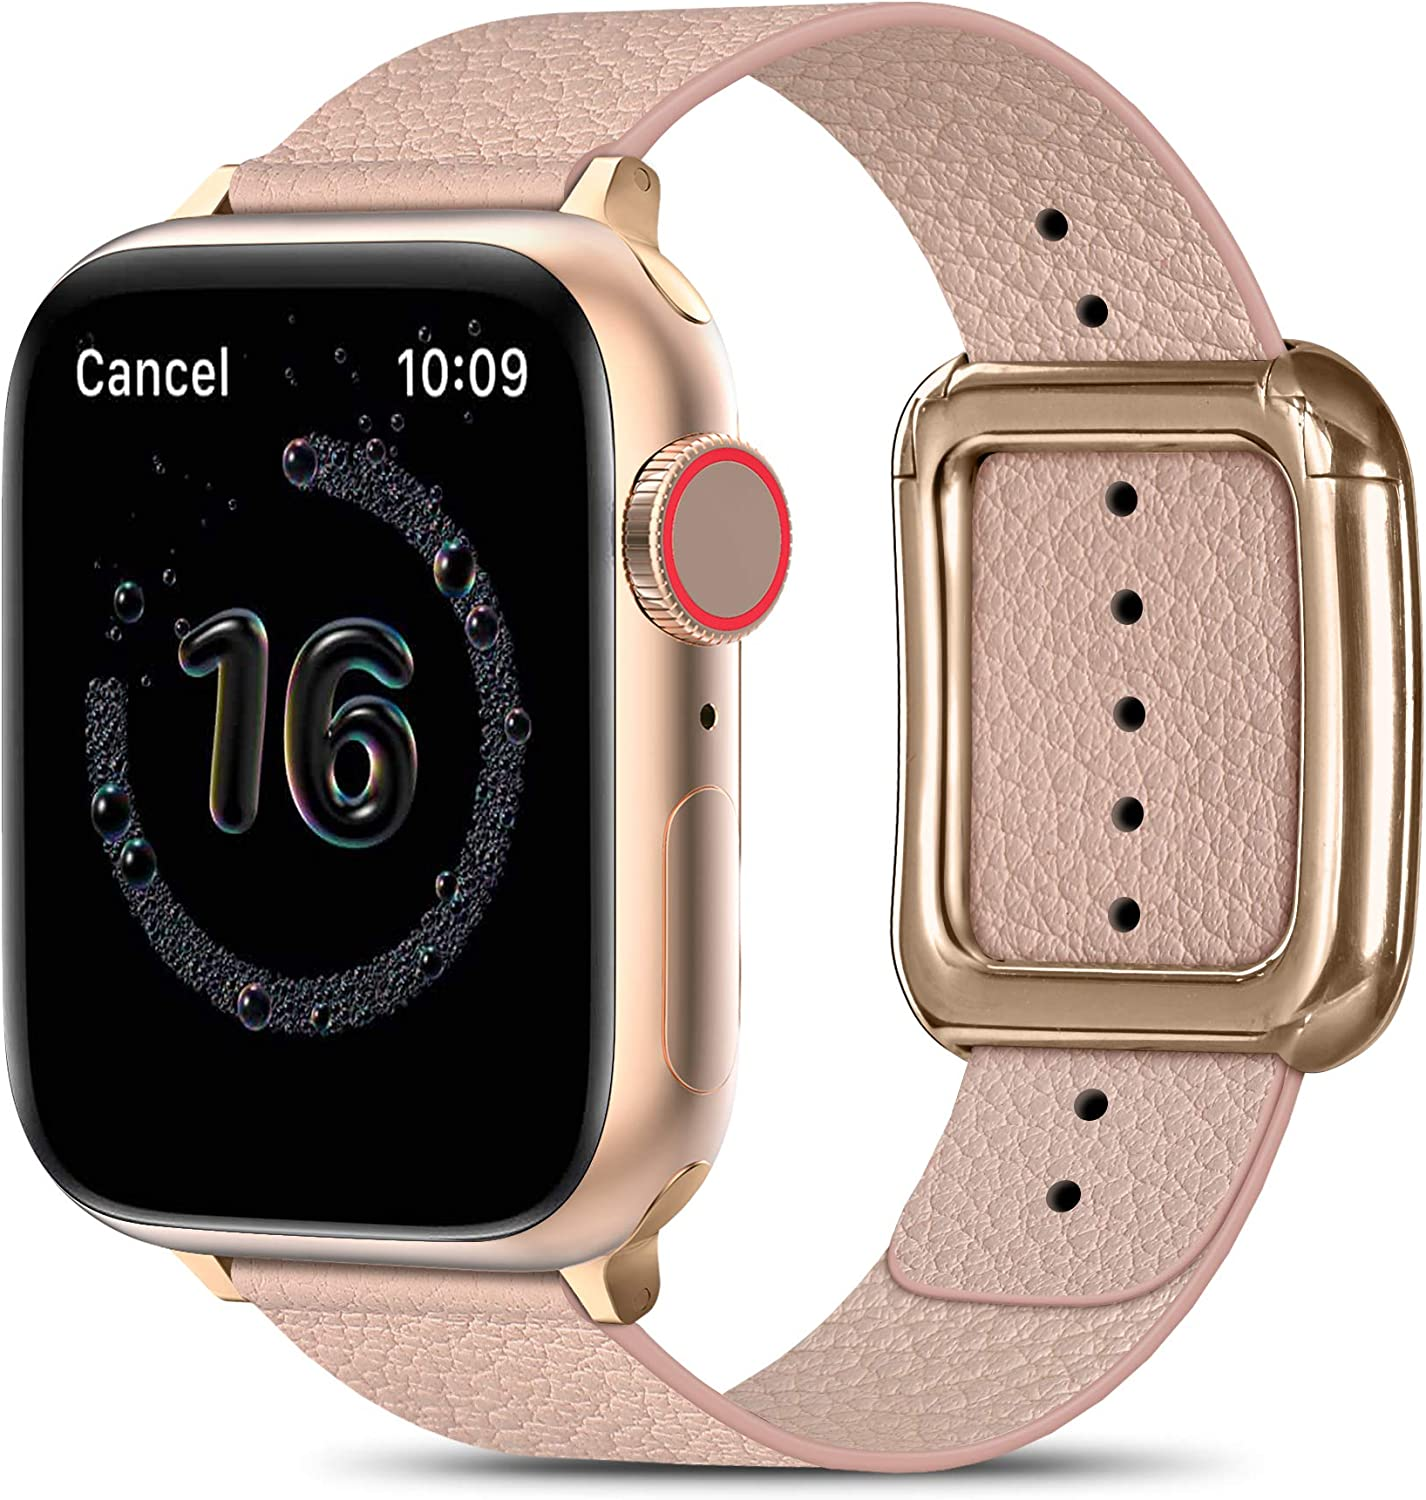 MARGE PLUS Compatible with Apple Watch Bands SE Series 6 5 4 40mm 44mm / Series 3 2 1 38mm 42mm for Men Women, Soft Leather Replacement with Magnetic Clasp for Apple Watch Band - Pink/Rose Gold